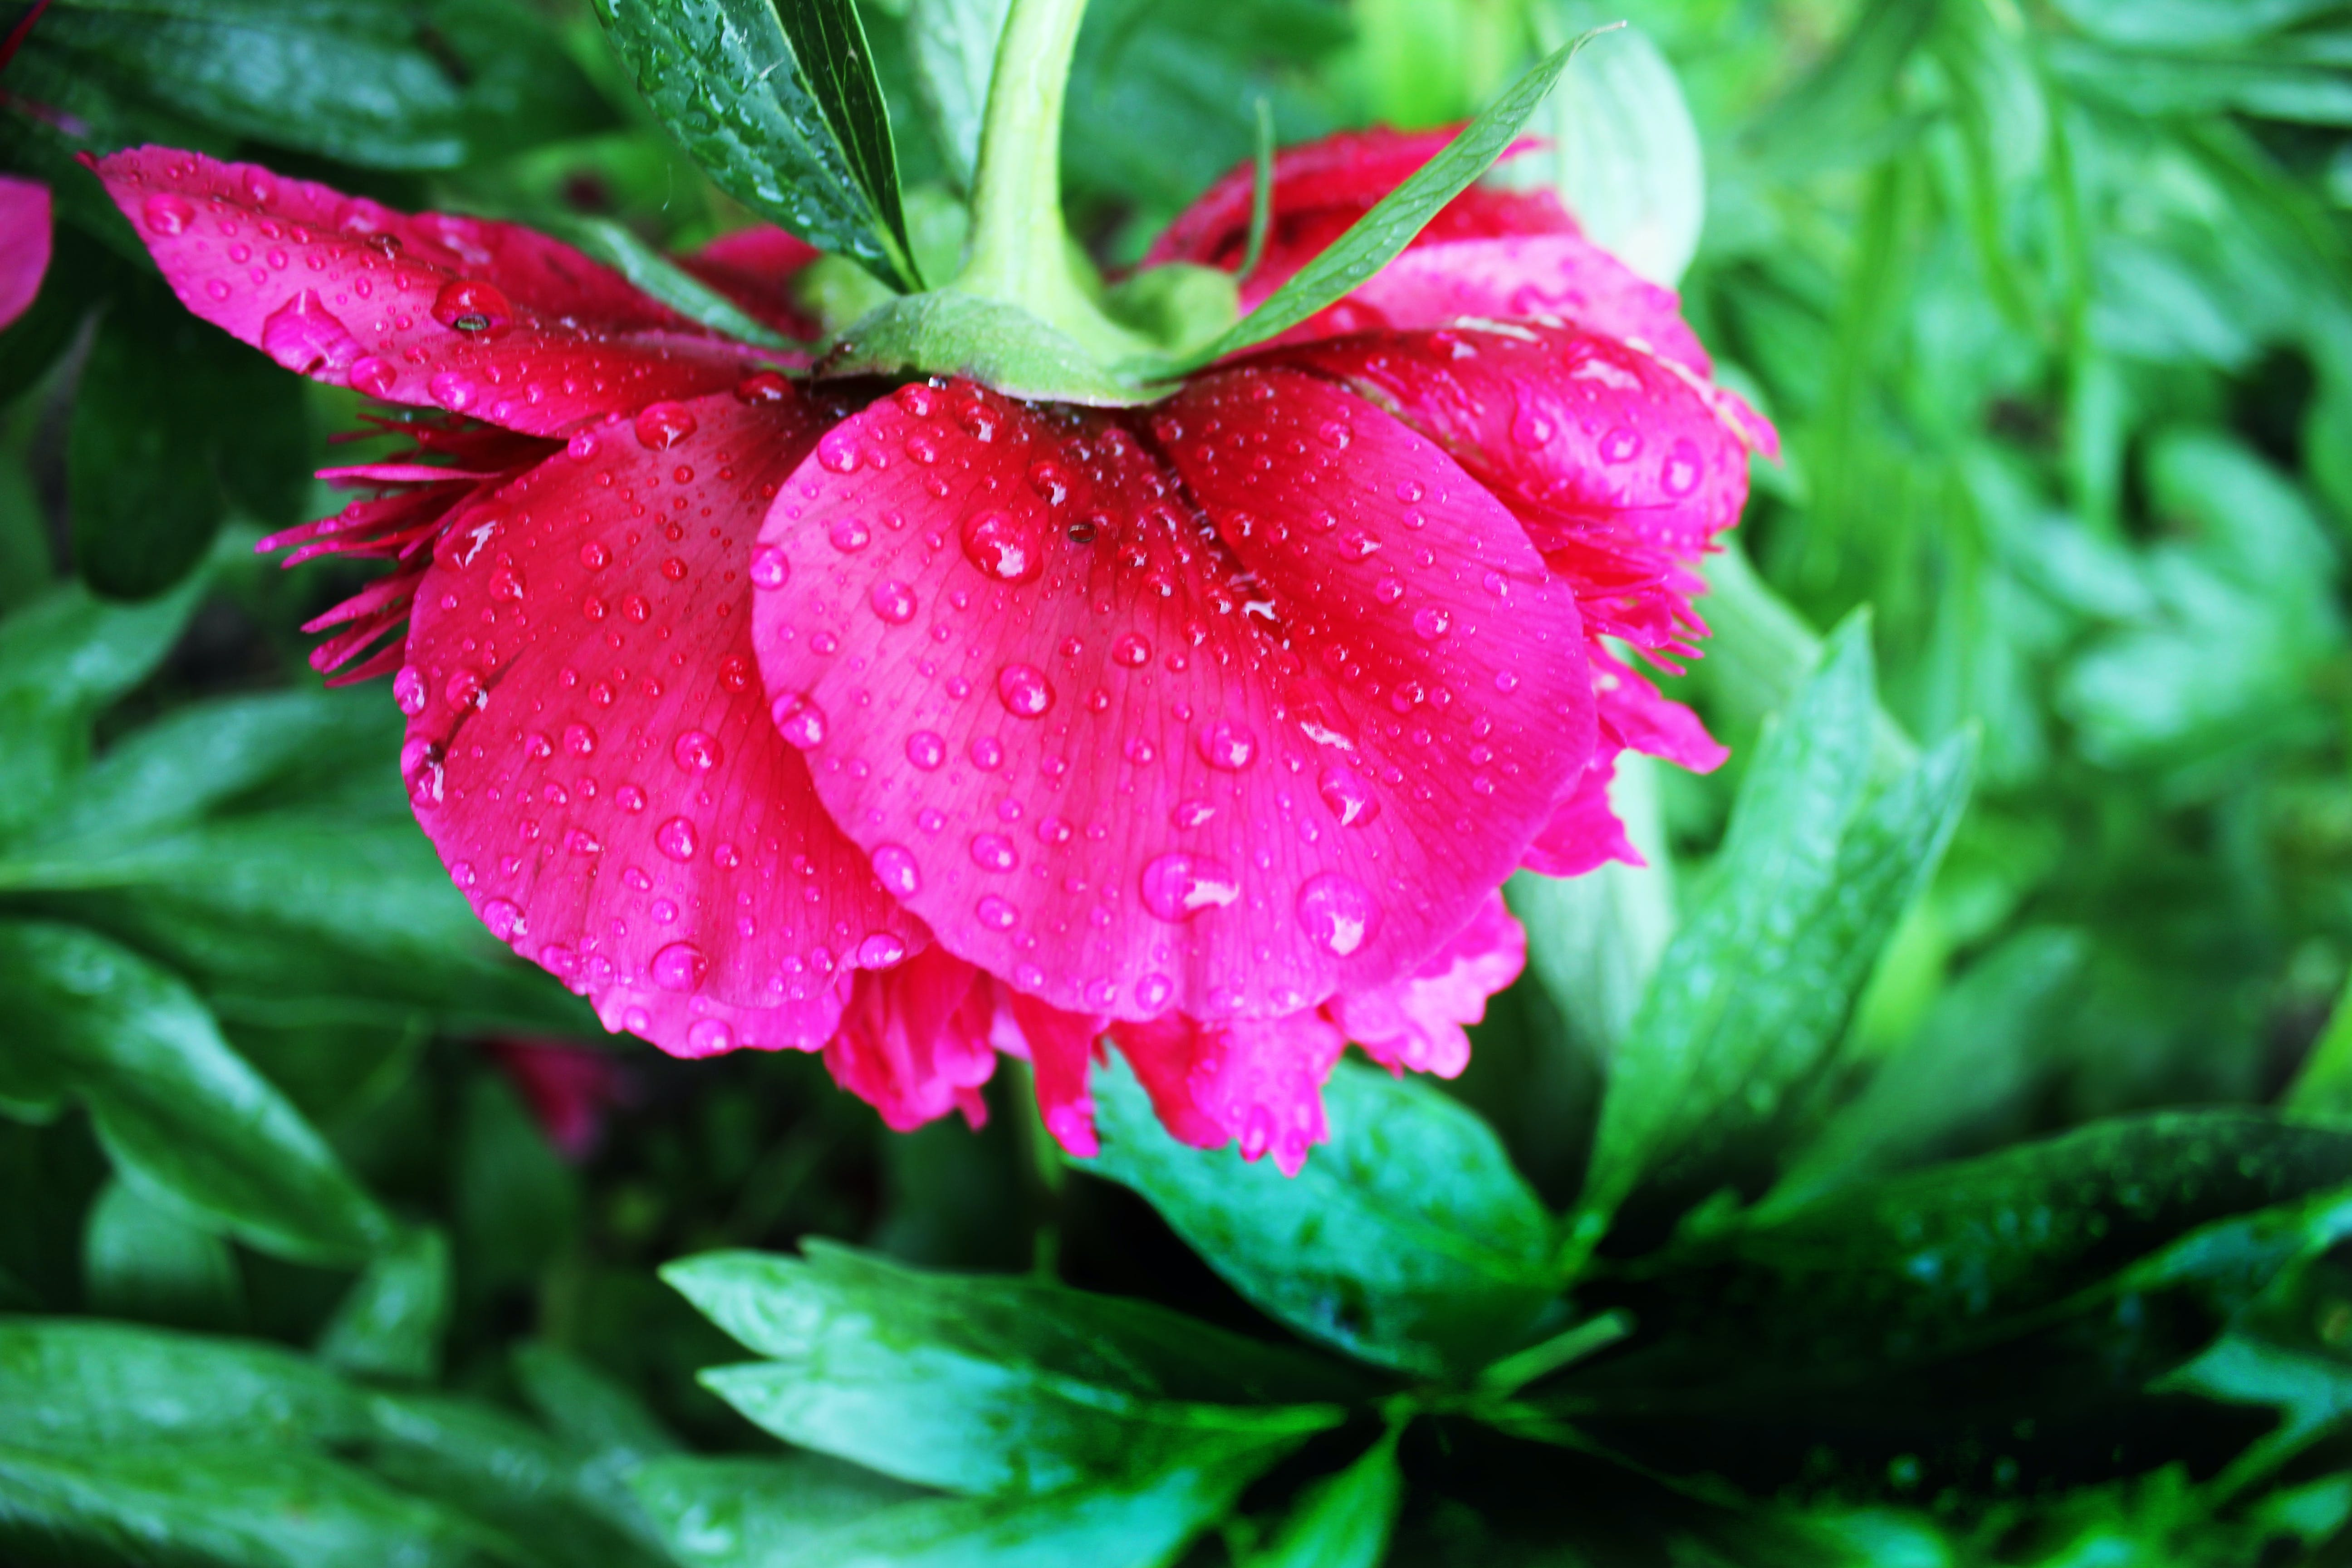 Pink Peony Flower in Closeup Photography